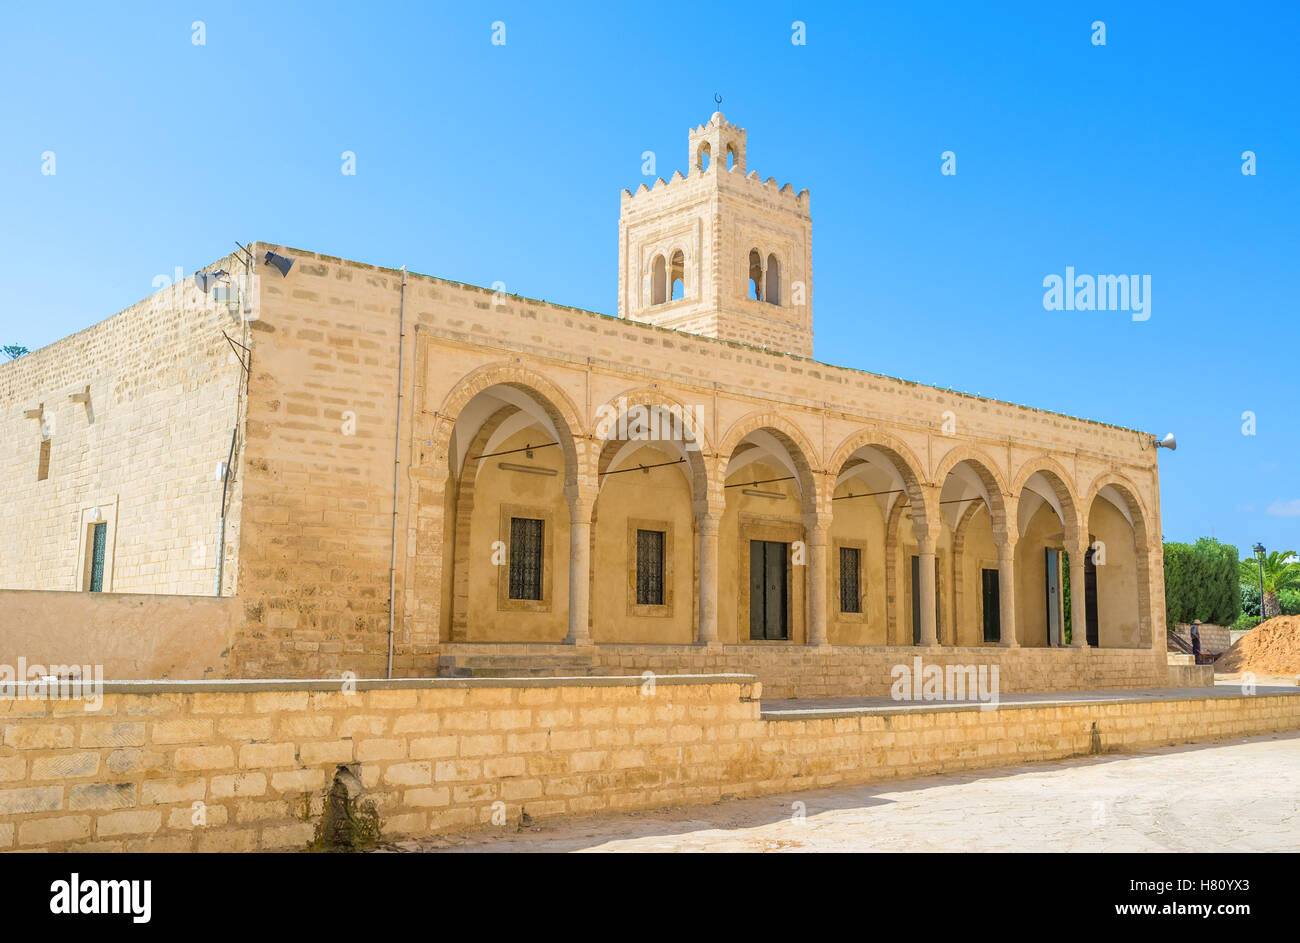 The facade of the medieval Grand Mosque, that is neighboring with Ribat citadel, Monastir, Tunisia. - Stock Image